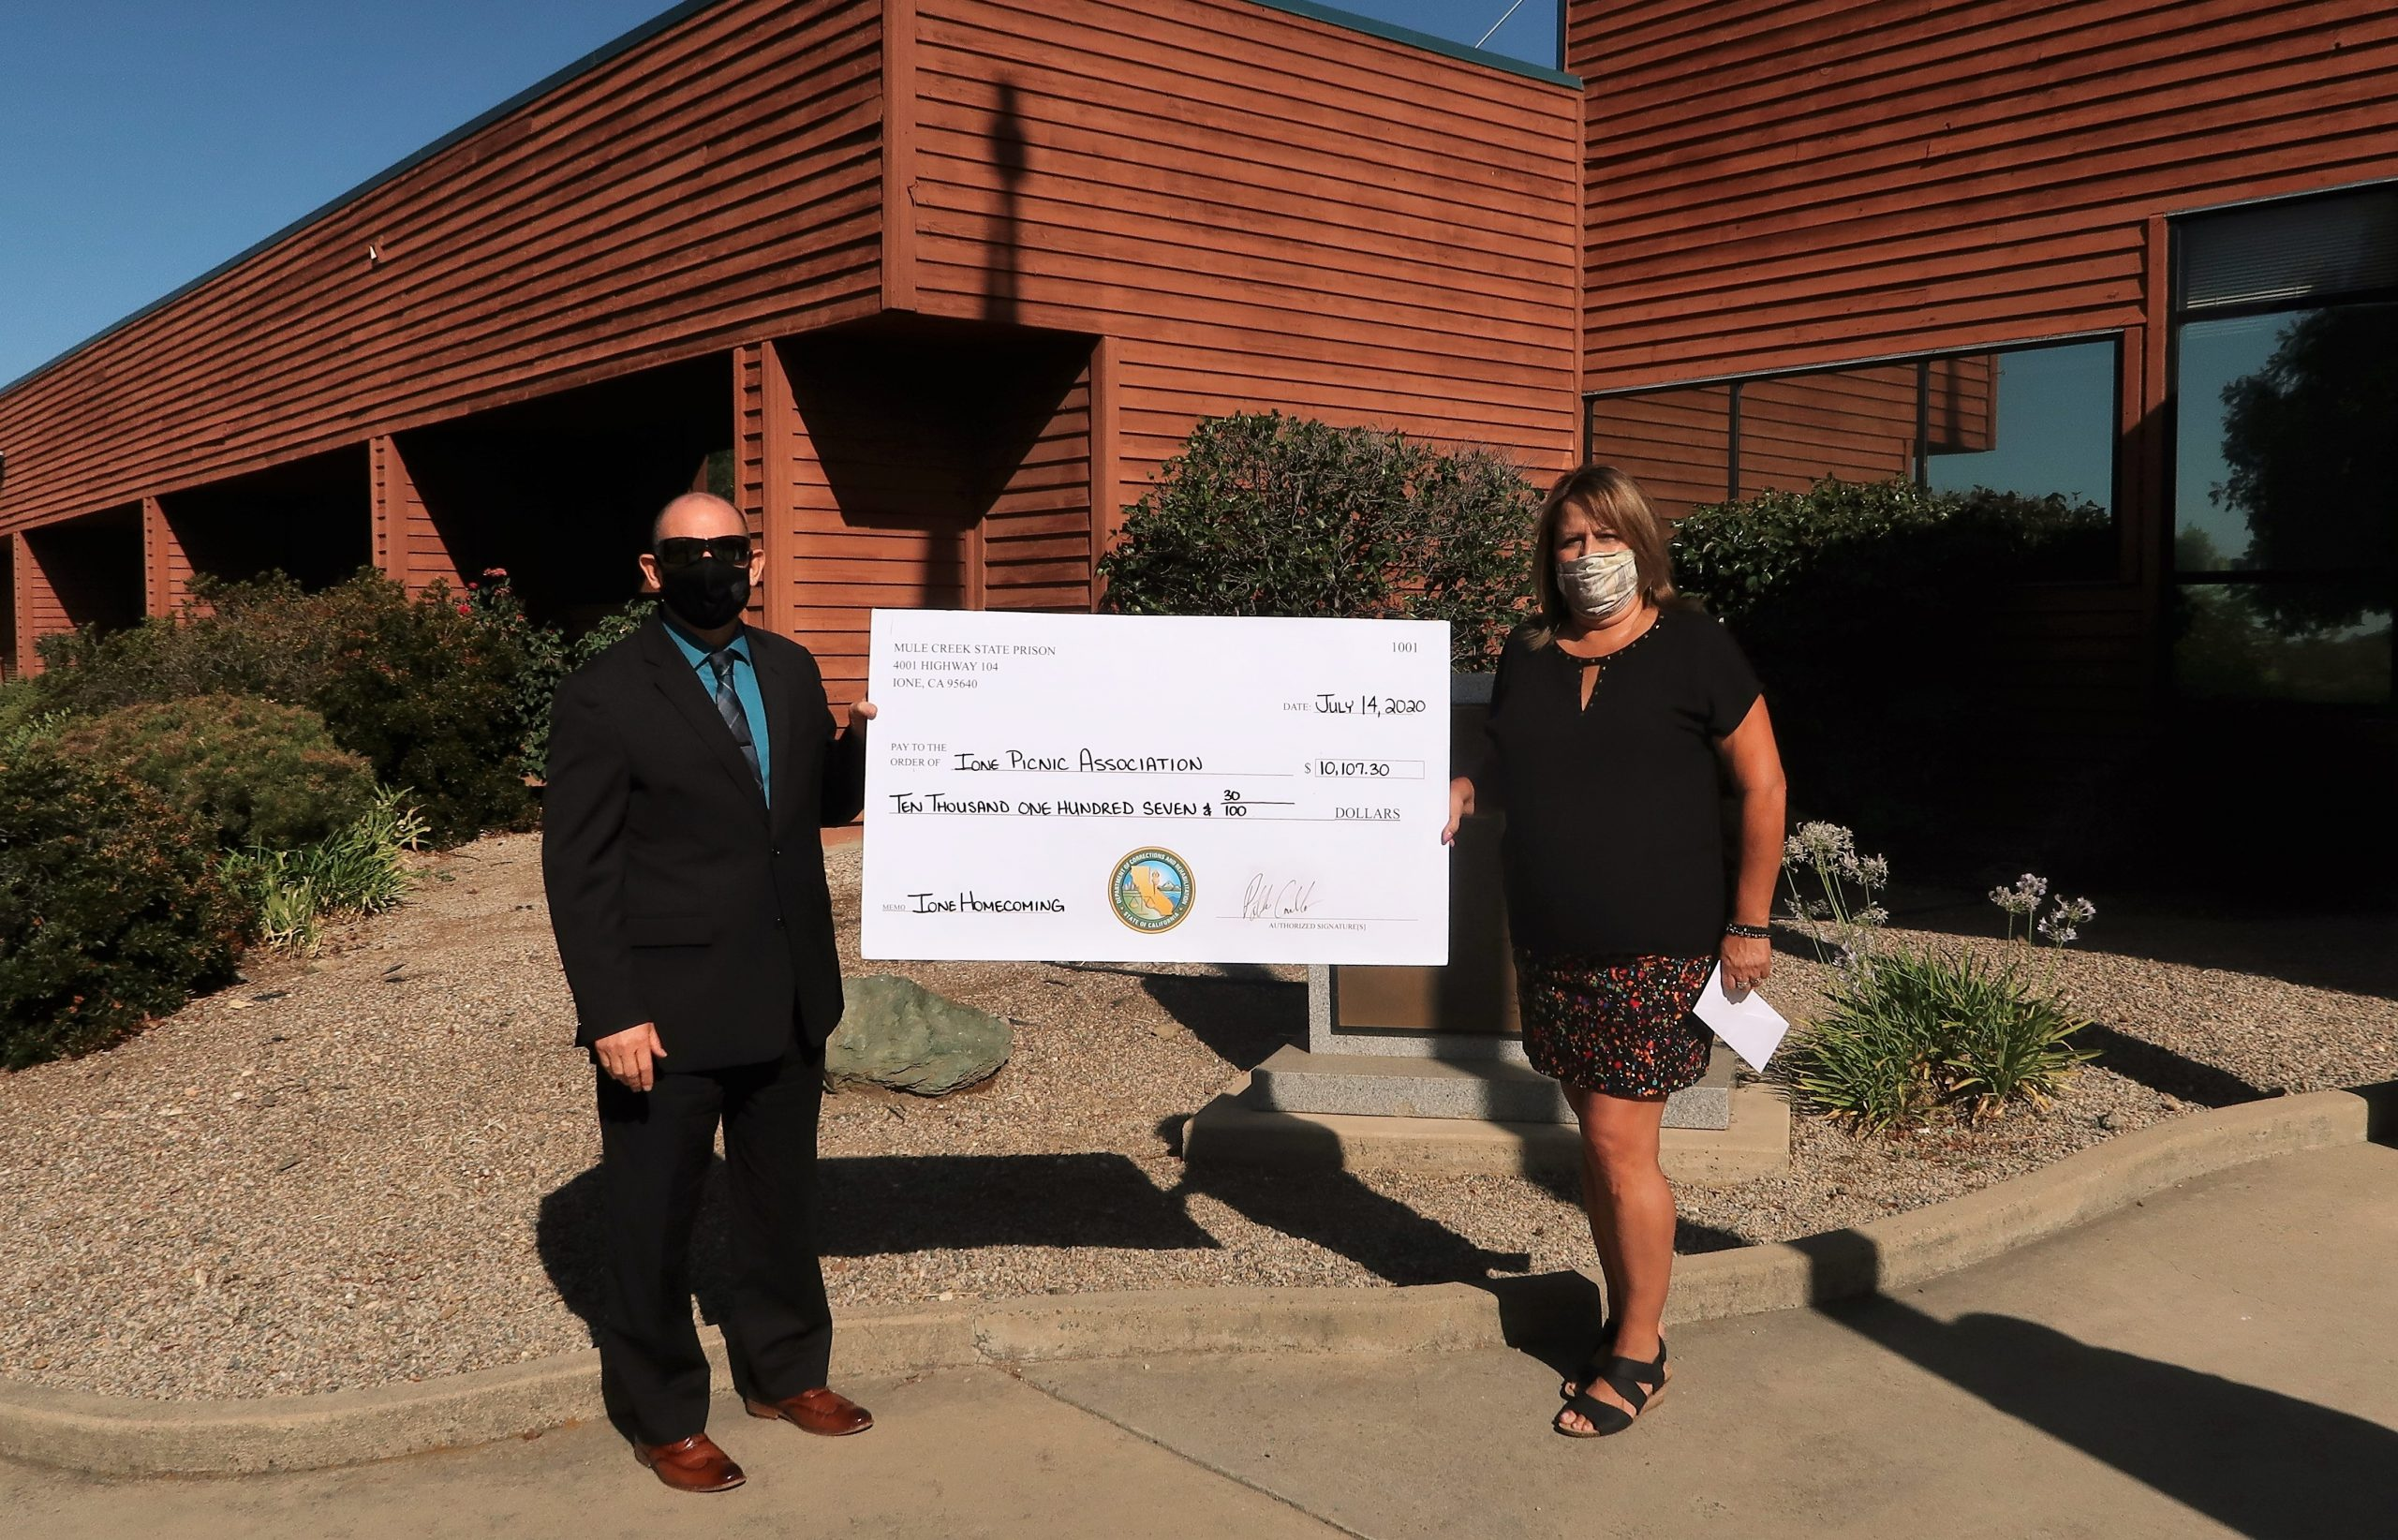 Two people hold an over-sized check while standing in front of a prison.